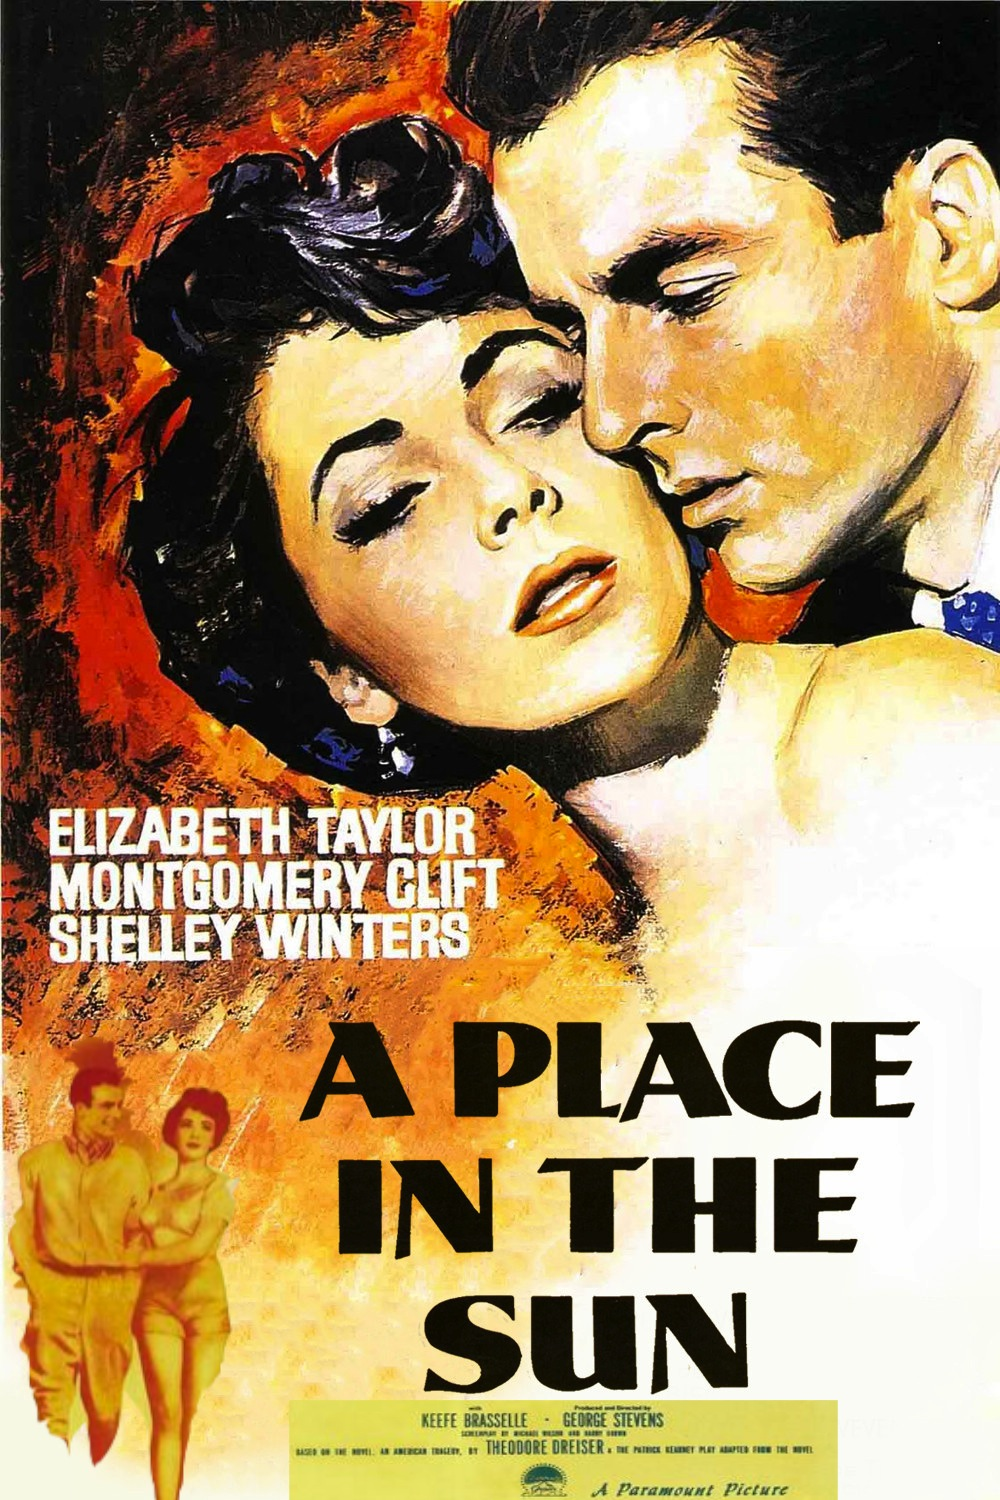 a place in the sun poster.jpg